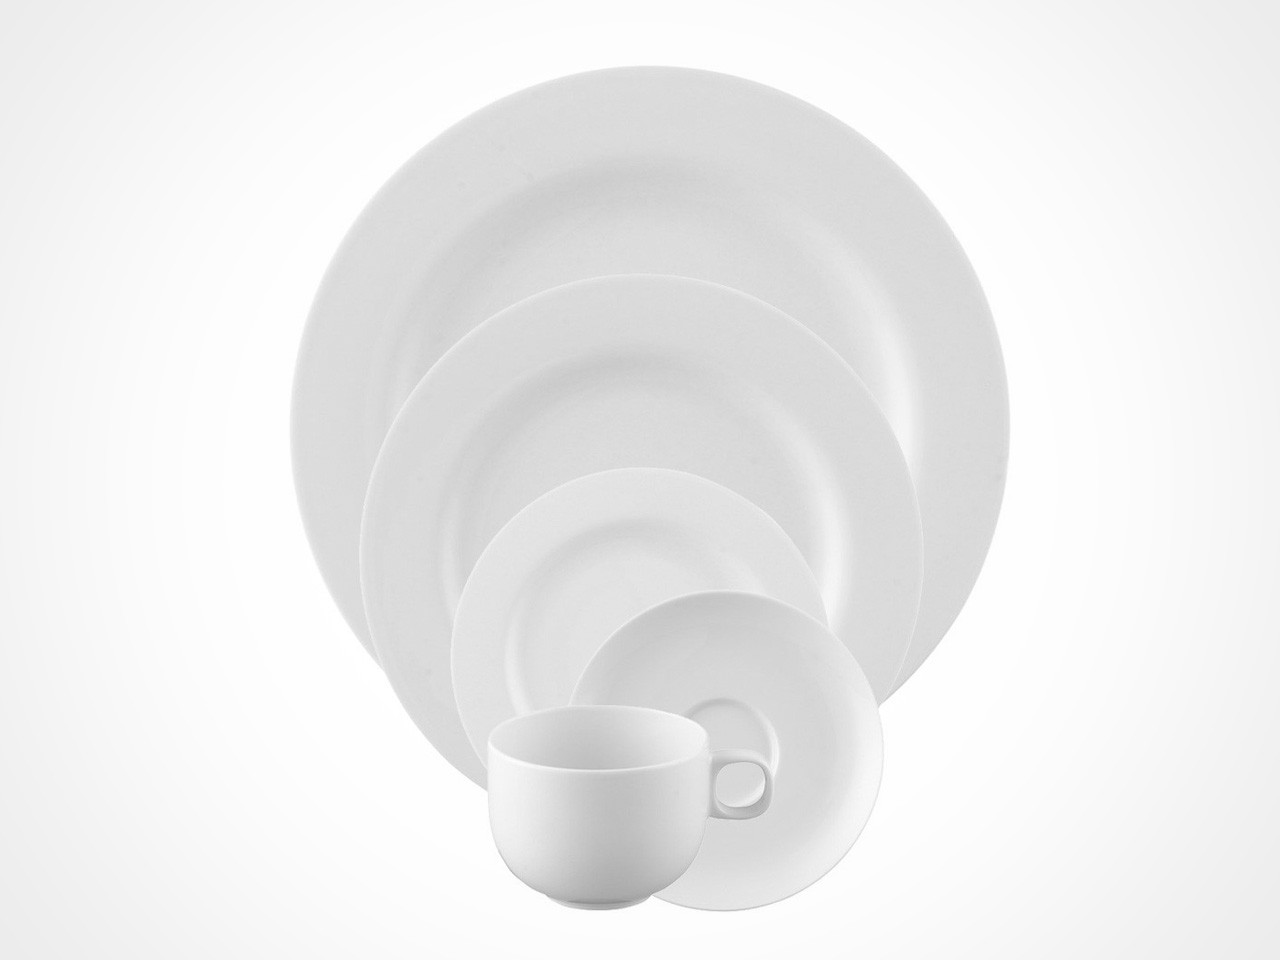 Rosenthal Moon White 5 piece place setting on white background.